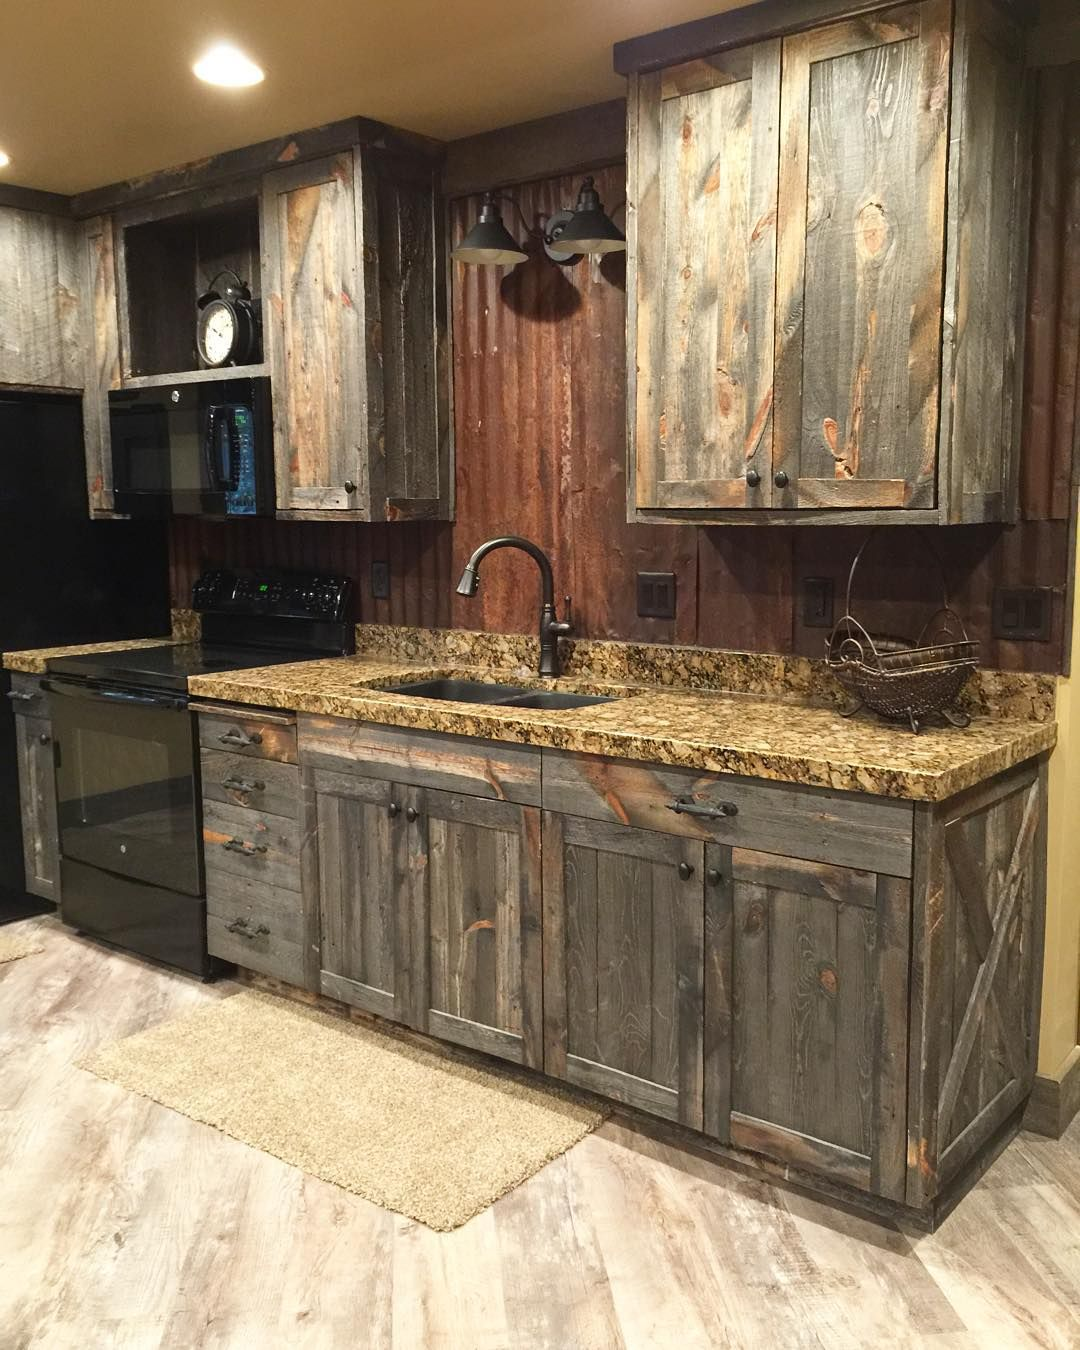 Superbe A Little Barnwood Kitchen Cabinets And Corrugated Steel Backsplash. Love  How Rustic And Homey It